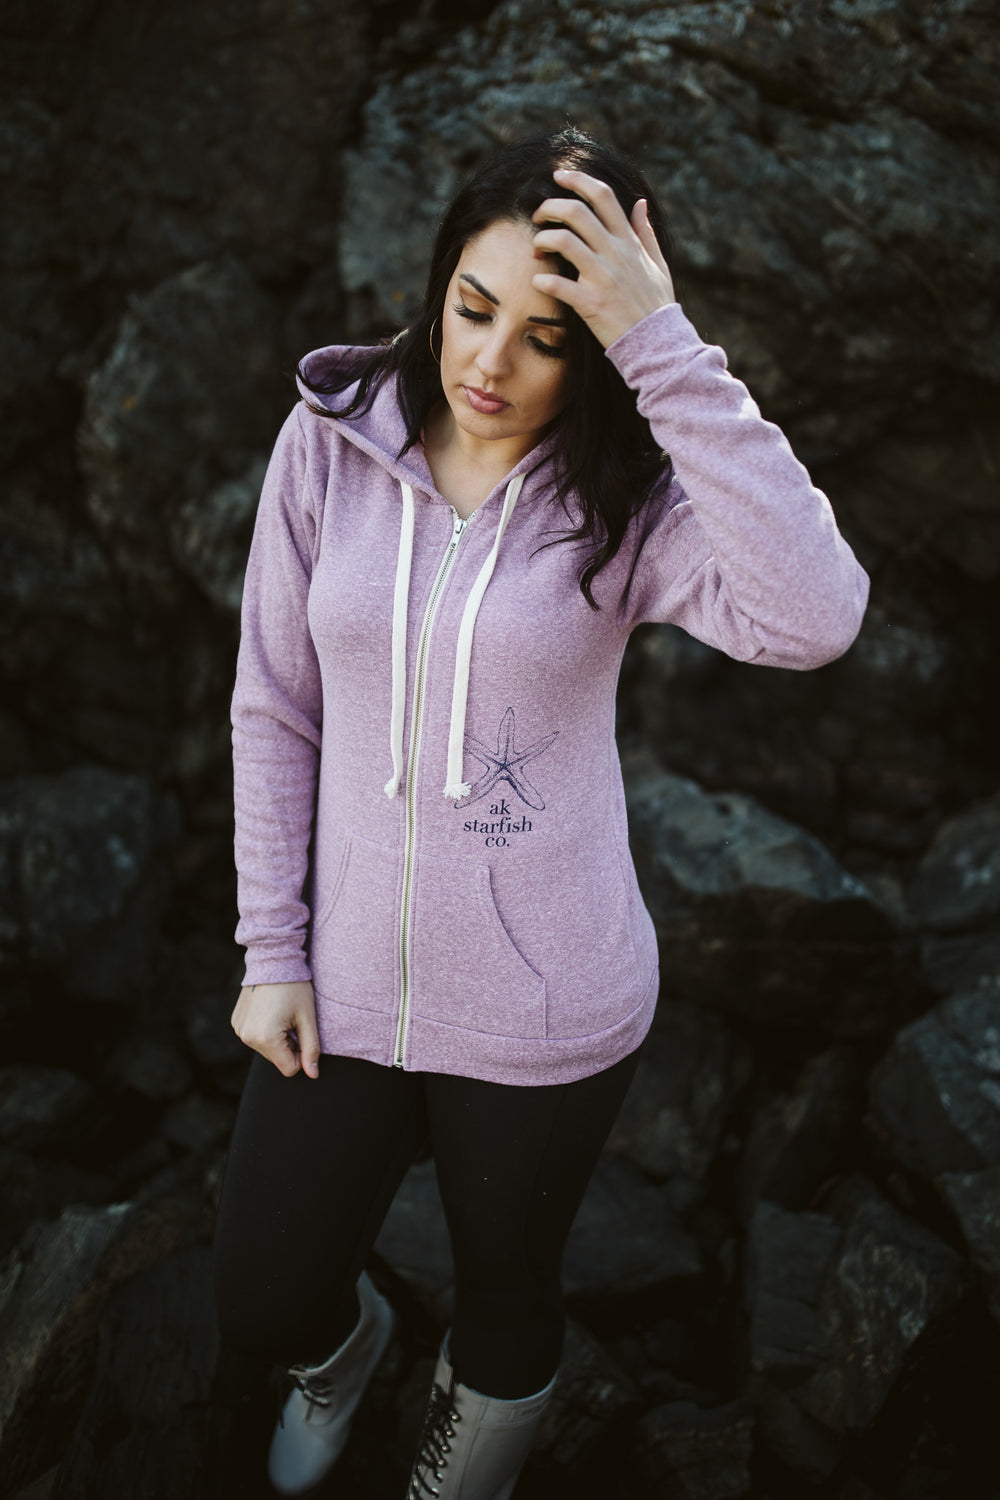 Beach Mussel Shell AK Starfish Co. Triblend Zipped Hoody $65.00